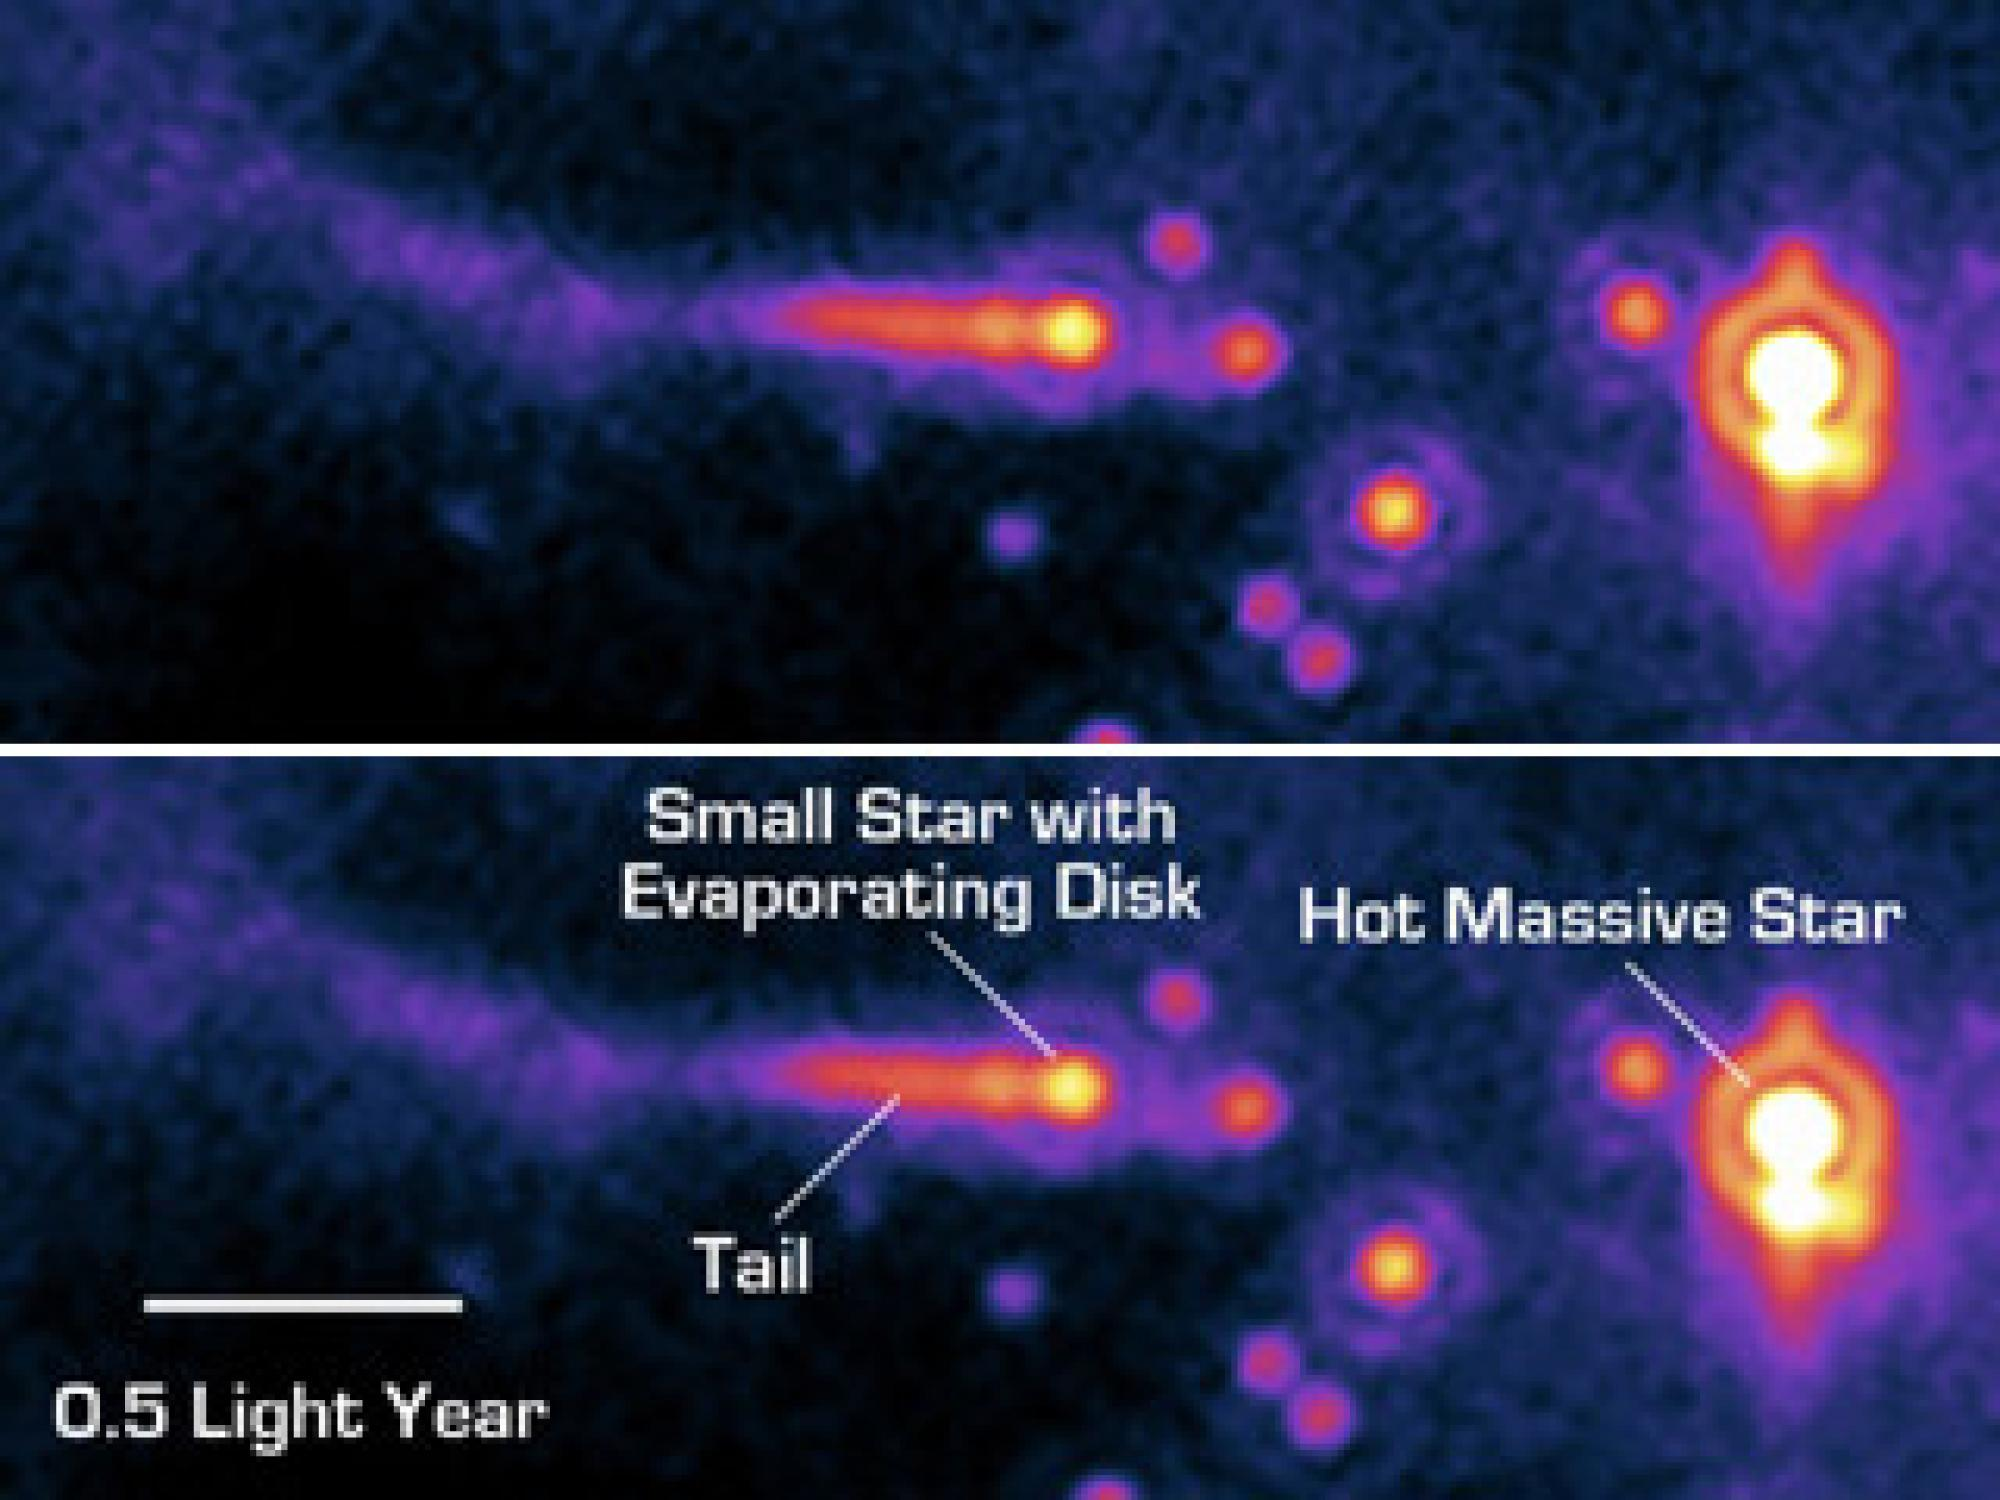 A Star's Close Encounter --The potential planet forming disk  of a sun-like star is being violently ripped away by the powerful winds of a nearby hot O-type star in the upper image, from NASA's Spitzer Space Telescope.  Text labels have been ad